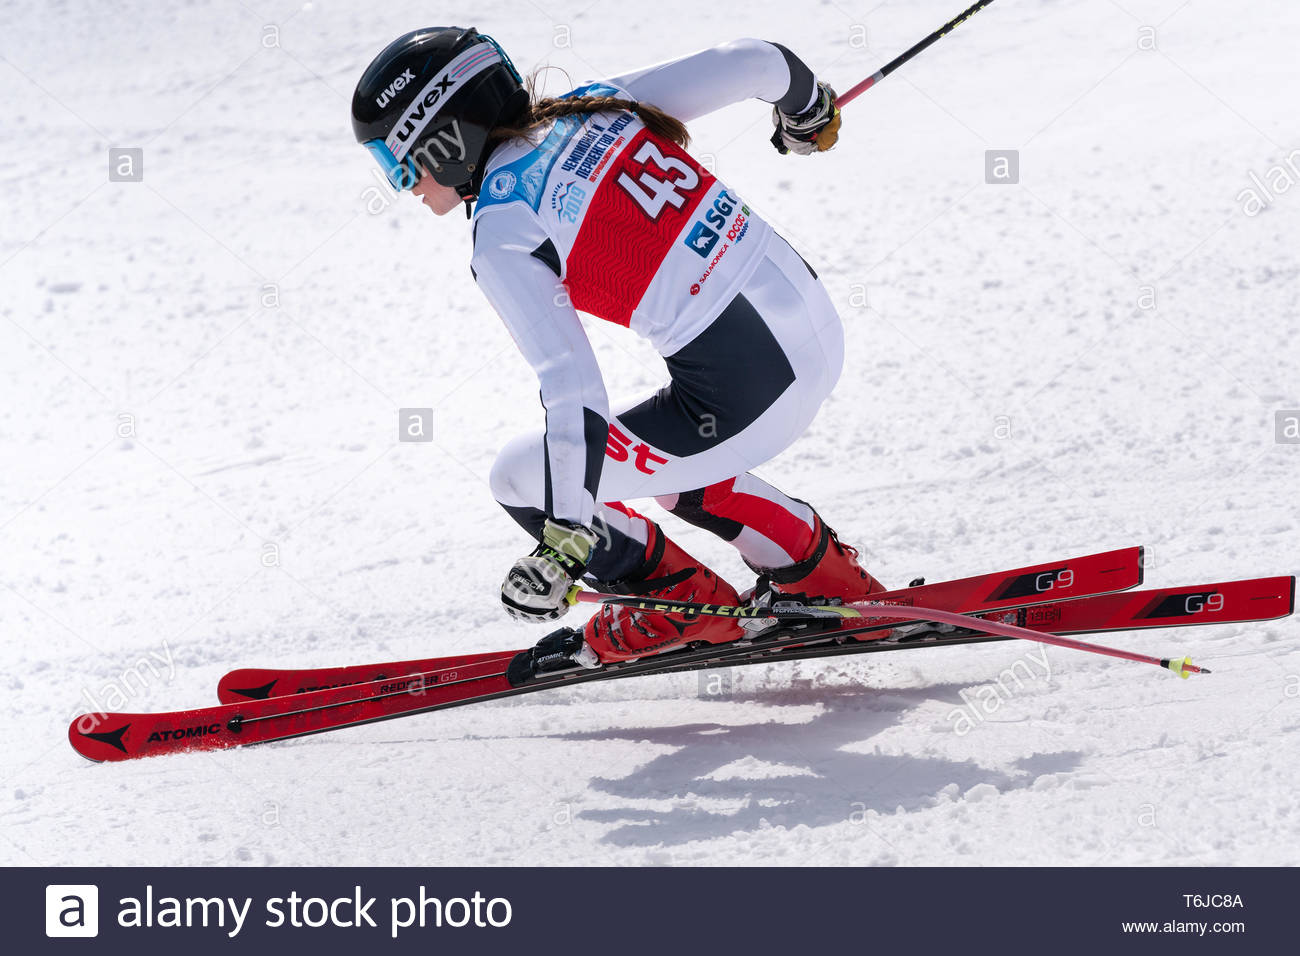 KAMCHATKA PENINSULA, RUSSIAN FEDERATION - APRIL 1, 2019: Russian Women's Alpine Skiing Championship giant slalom. Mountain skier Ellina Dyachenko (Sak - Stock Image